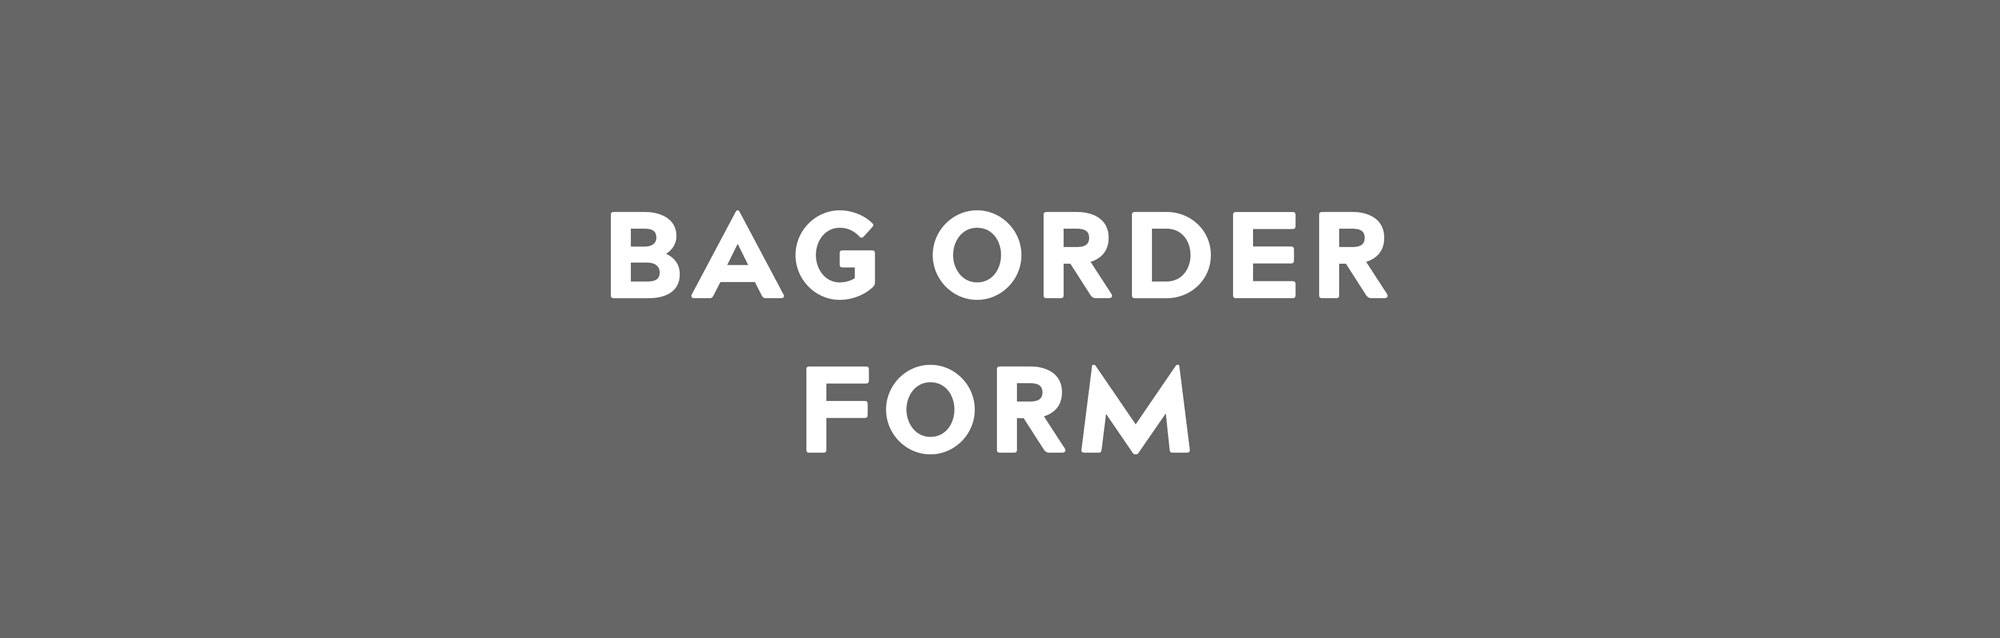 Ambassador resources bag order form